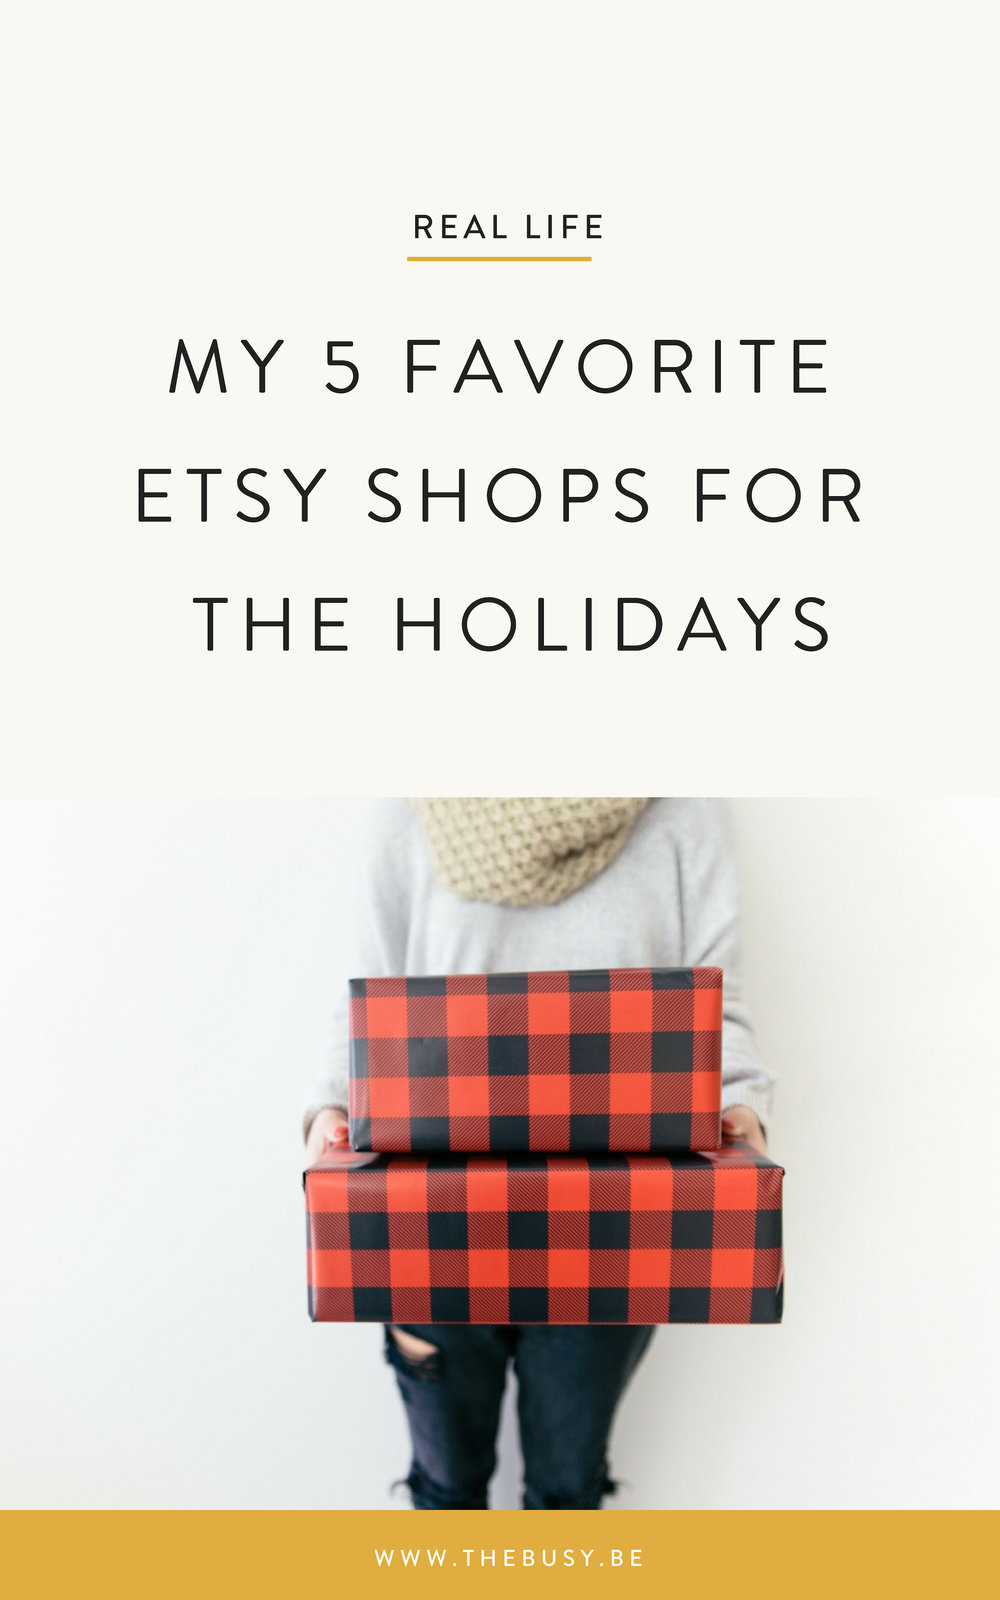 My 5 Favorite Etsy Shops For the Holiday - The Busy Bee